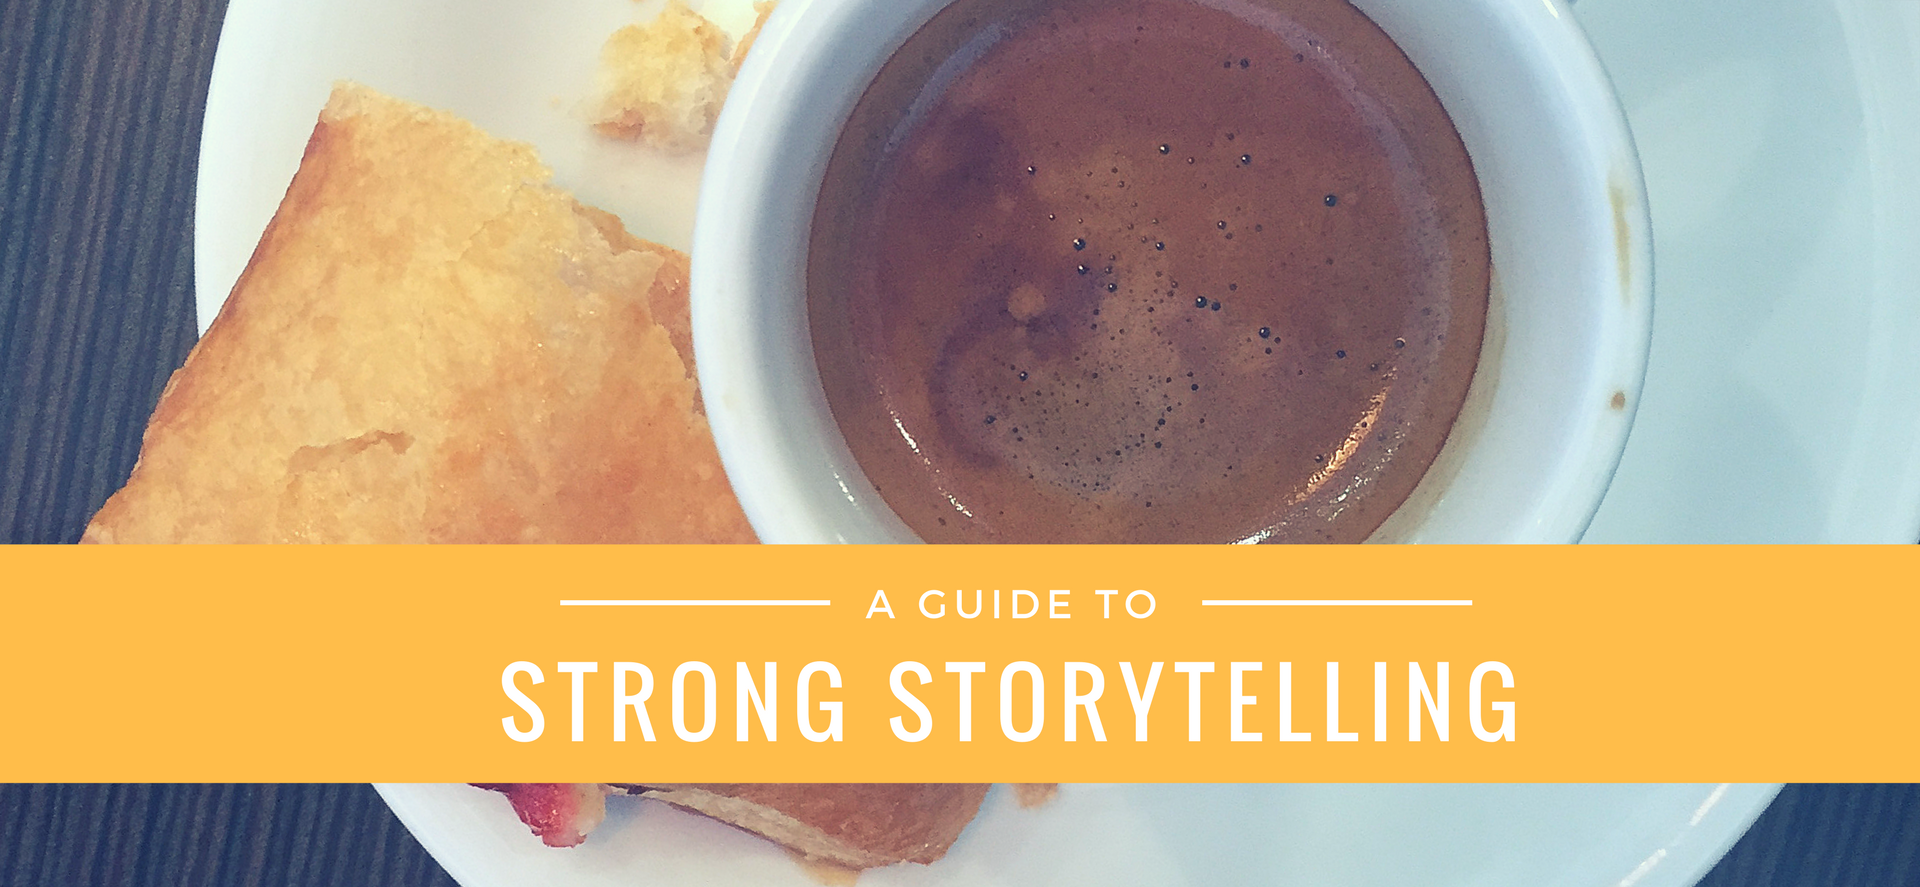 A Guide To Strong Storytelling